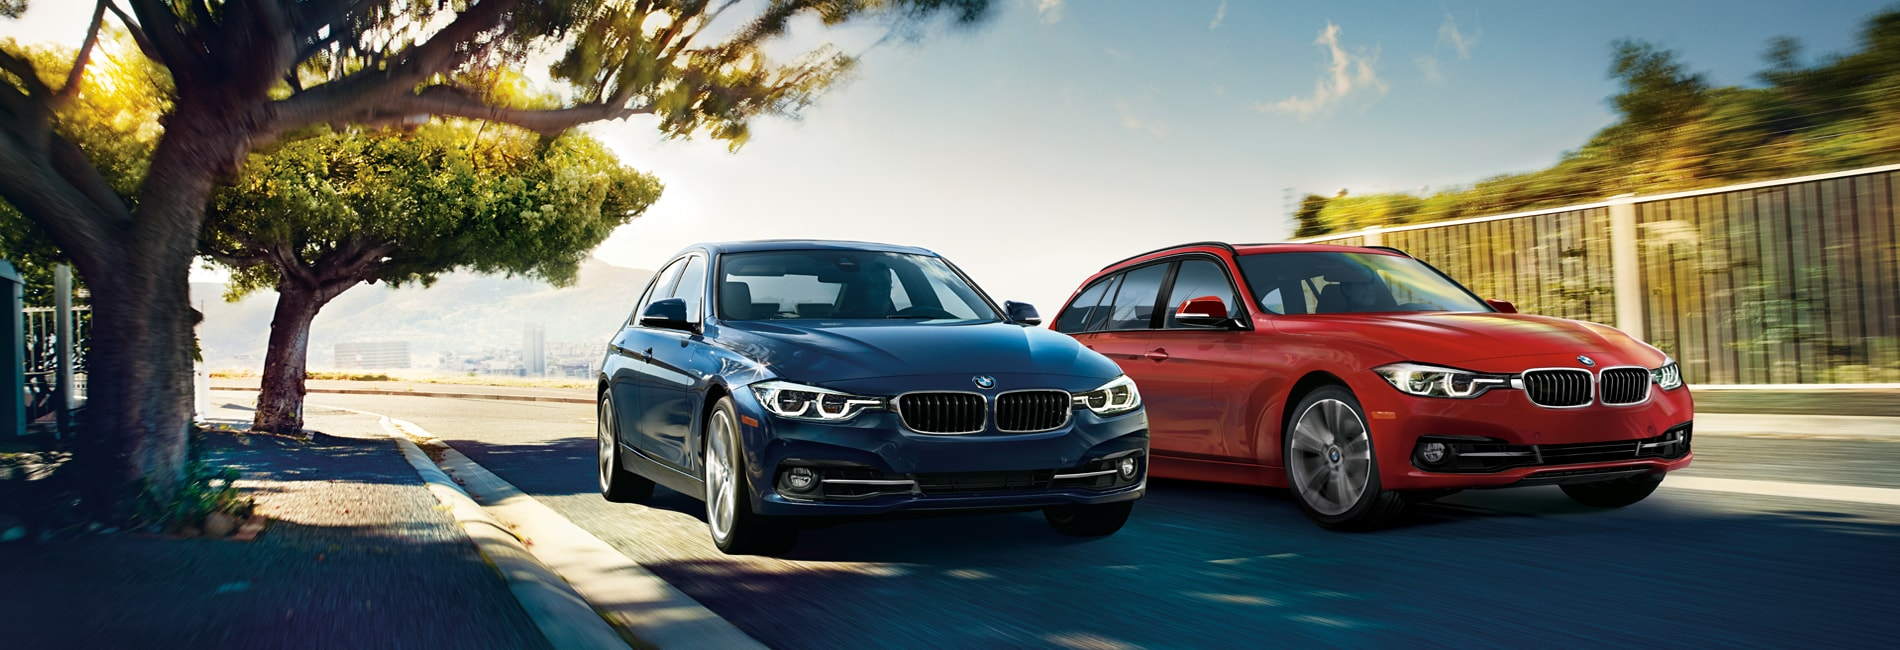 2019 BMW 3 Series Exterior Features